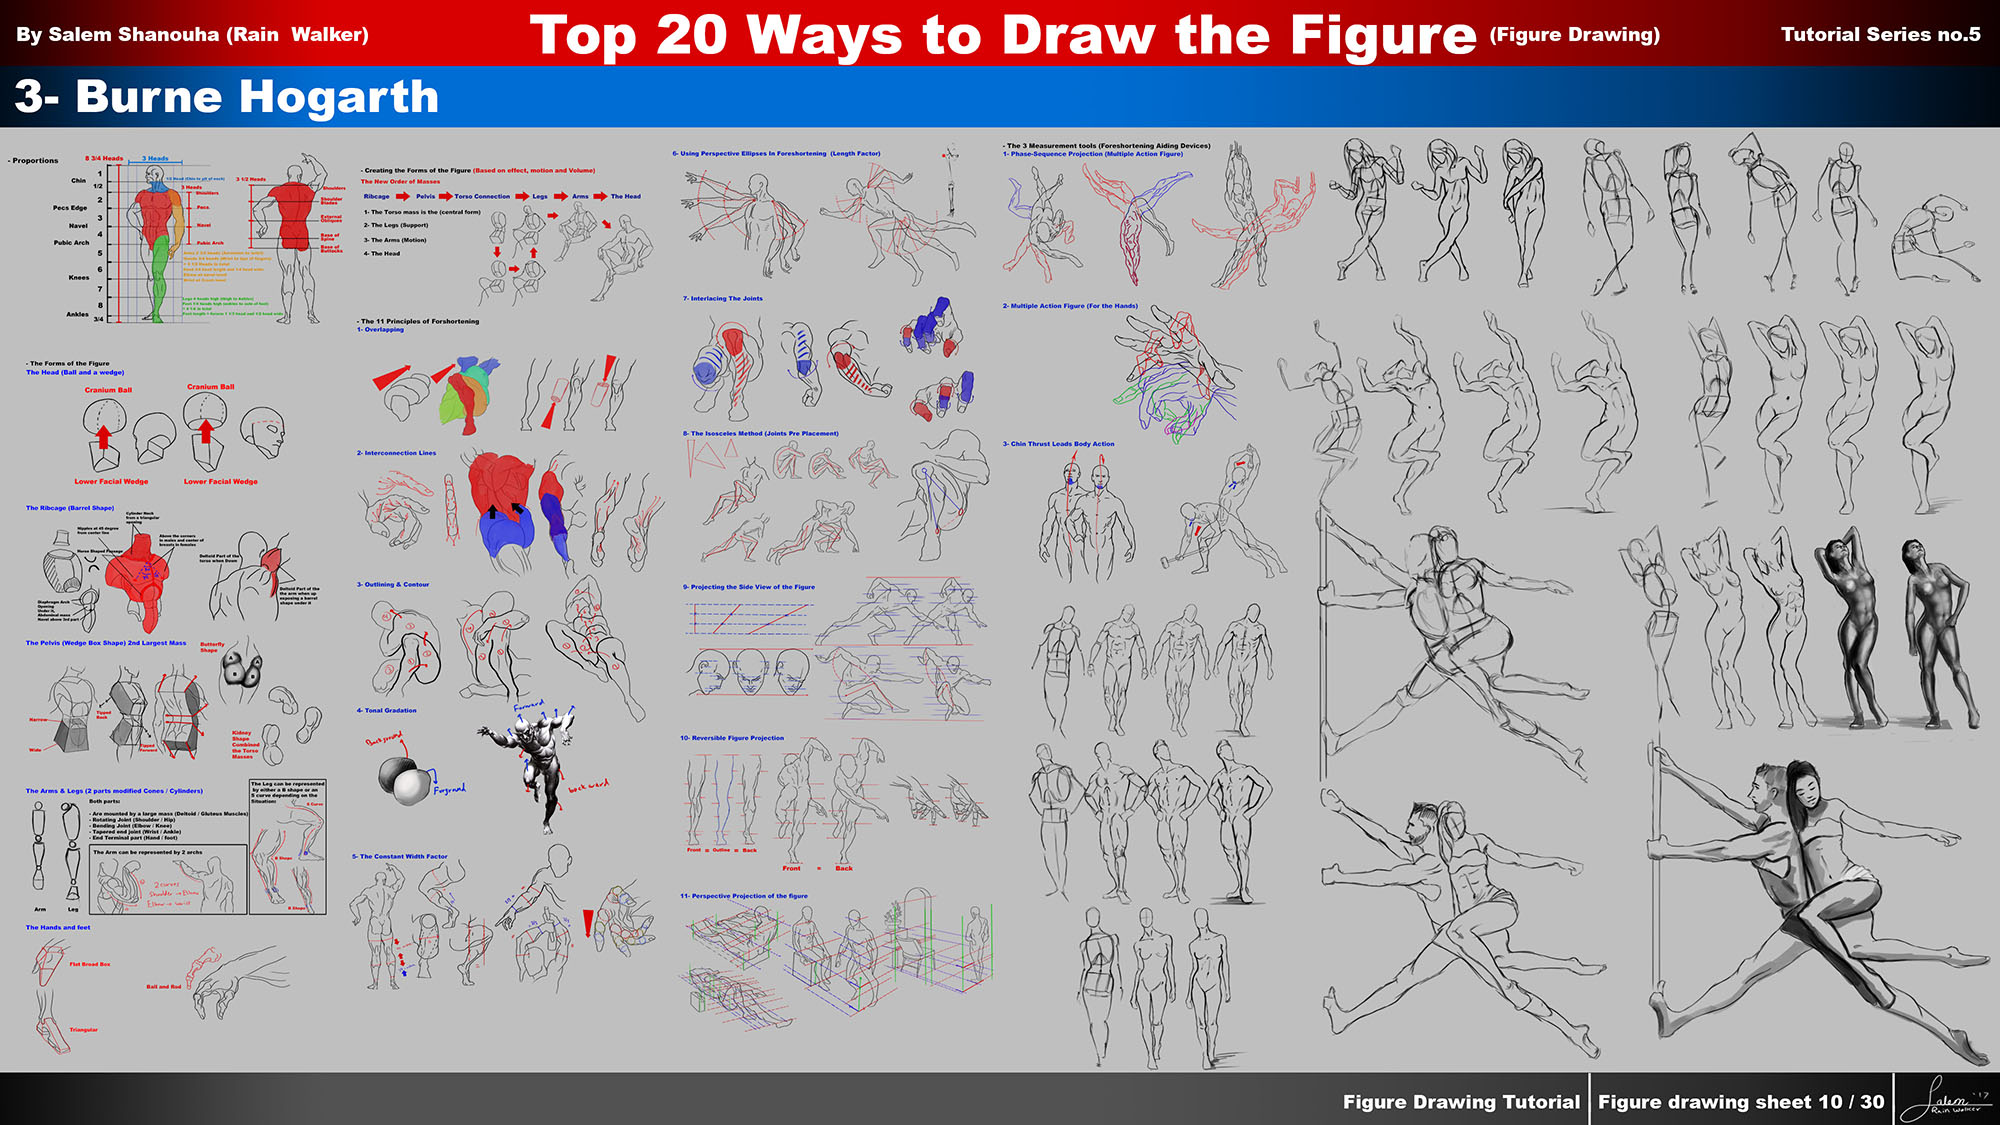 Top 20 ways to draw the figure Chapter 3 (Burne Hogarth)